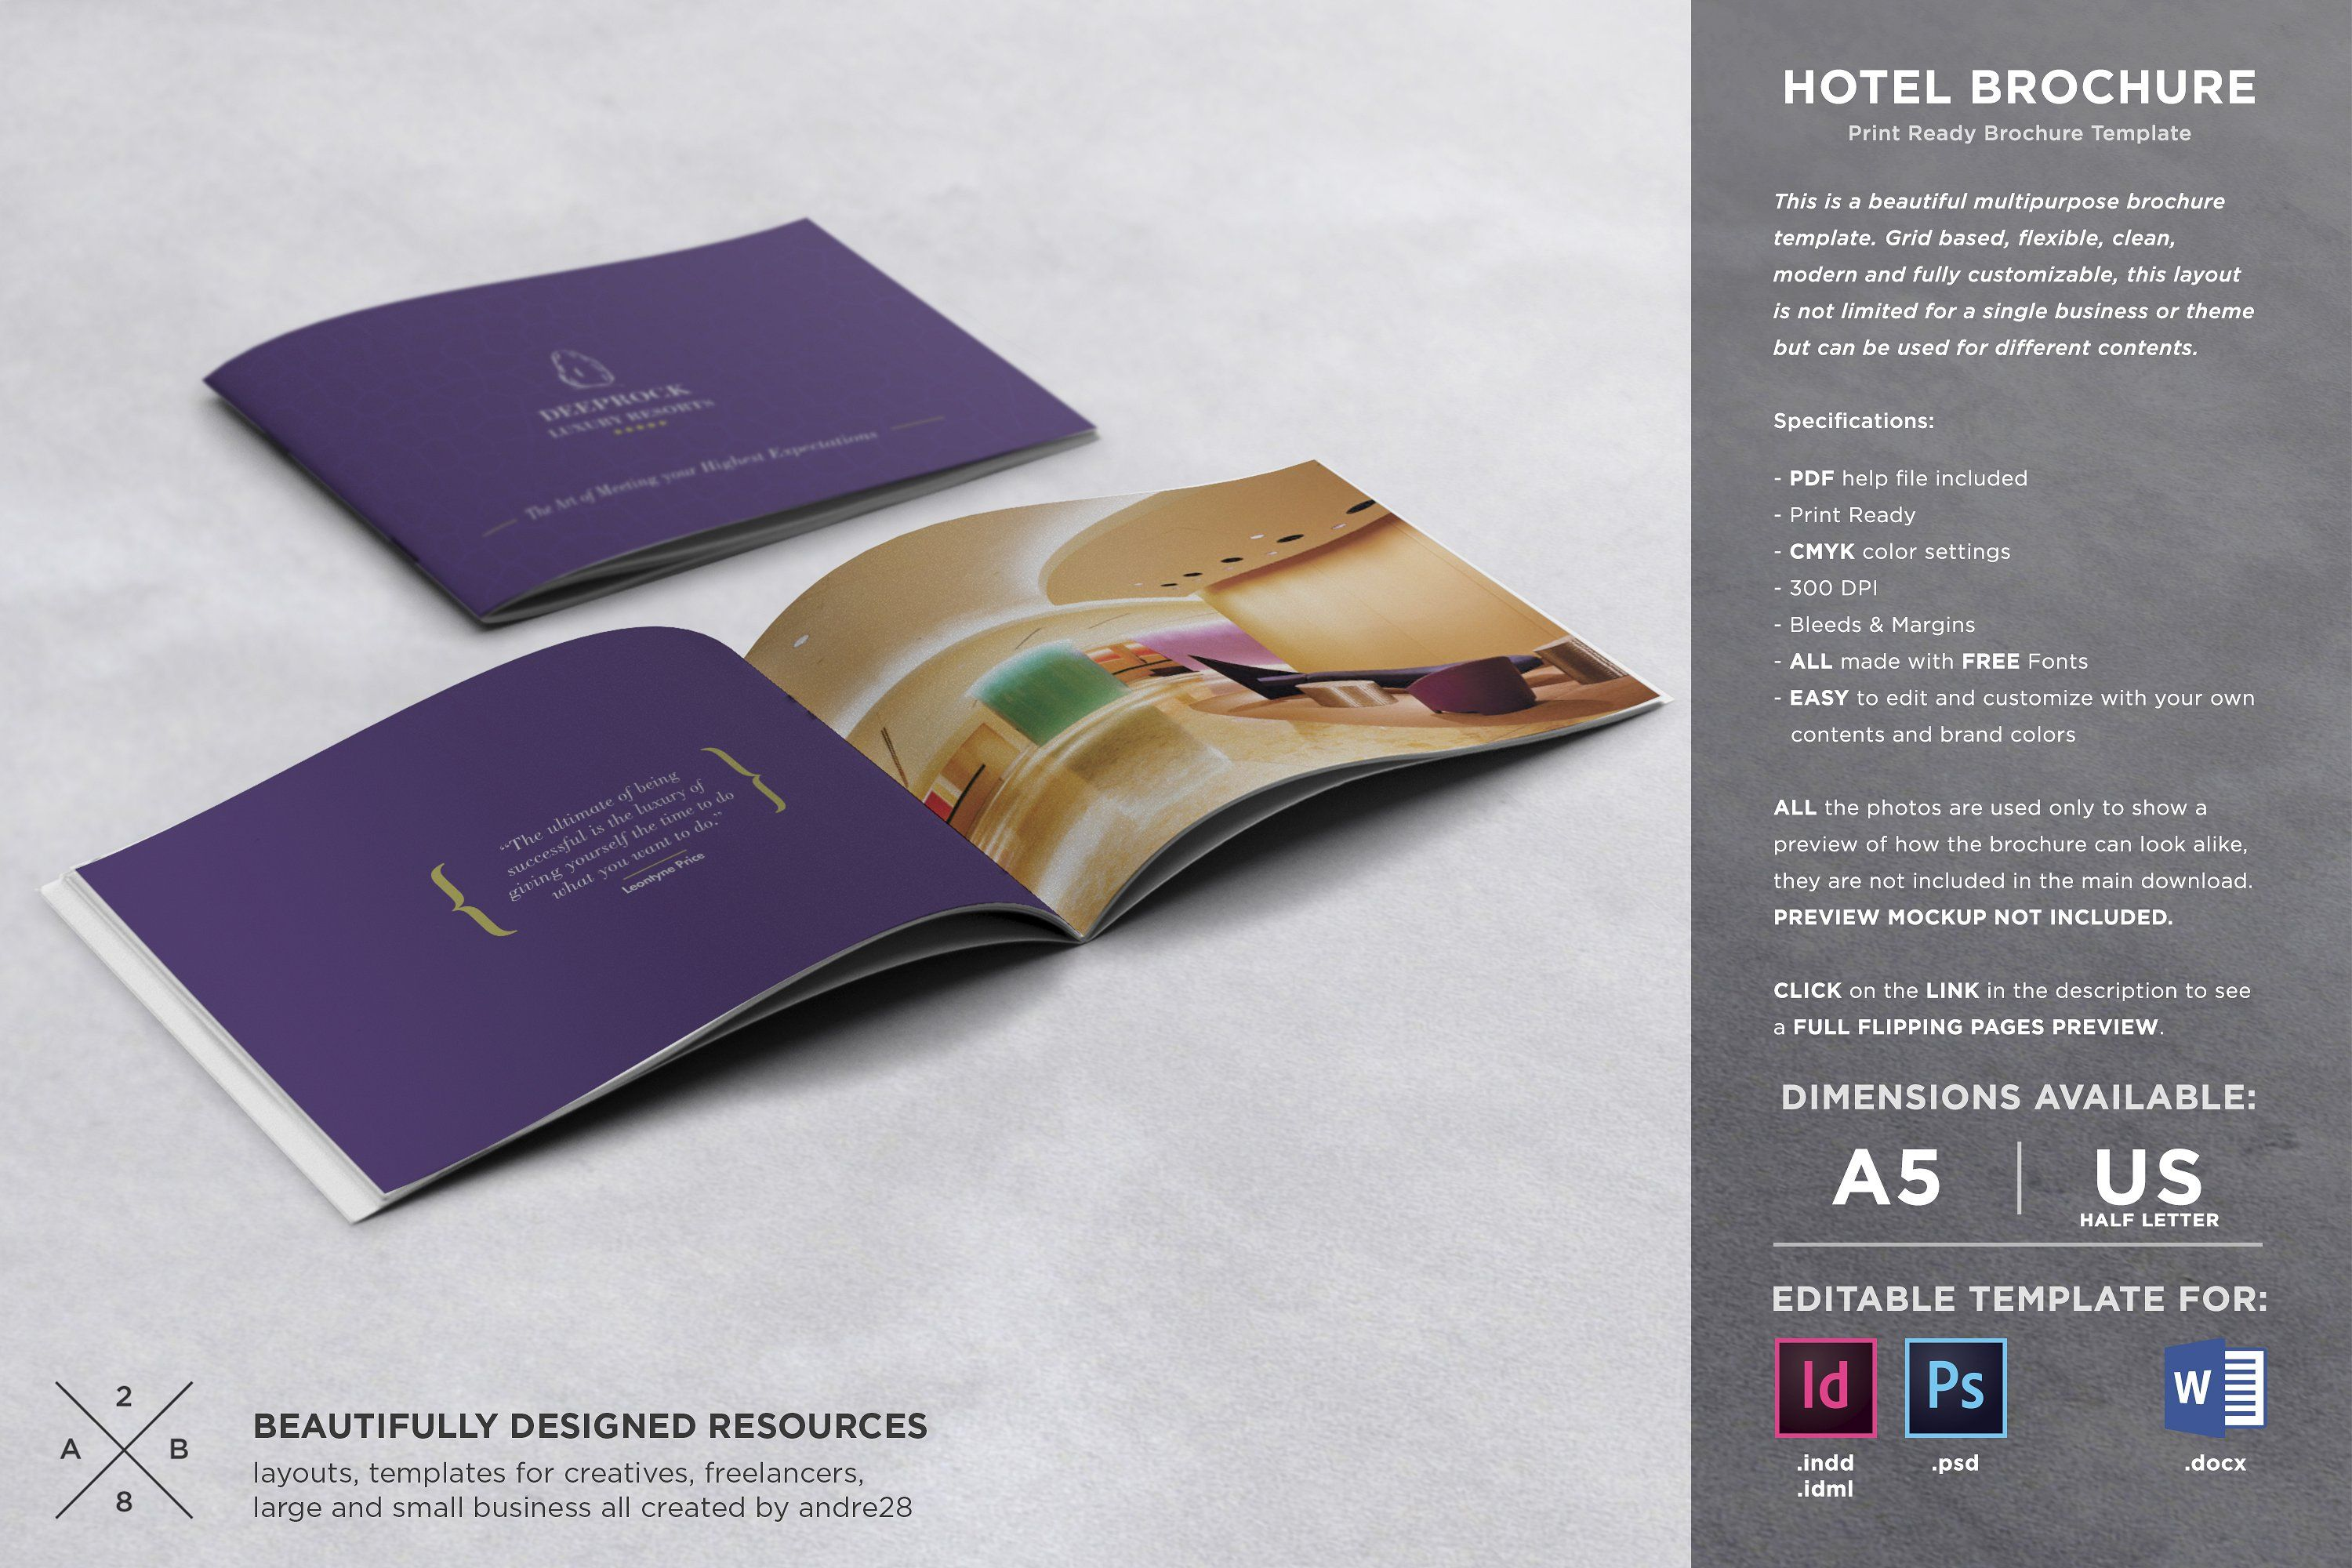 Hotel Brochure Template By Andre28 On @creativemarket